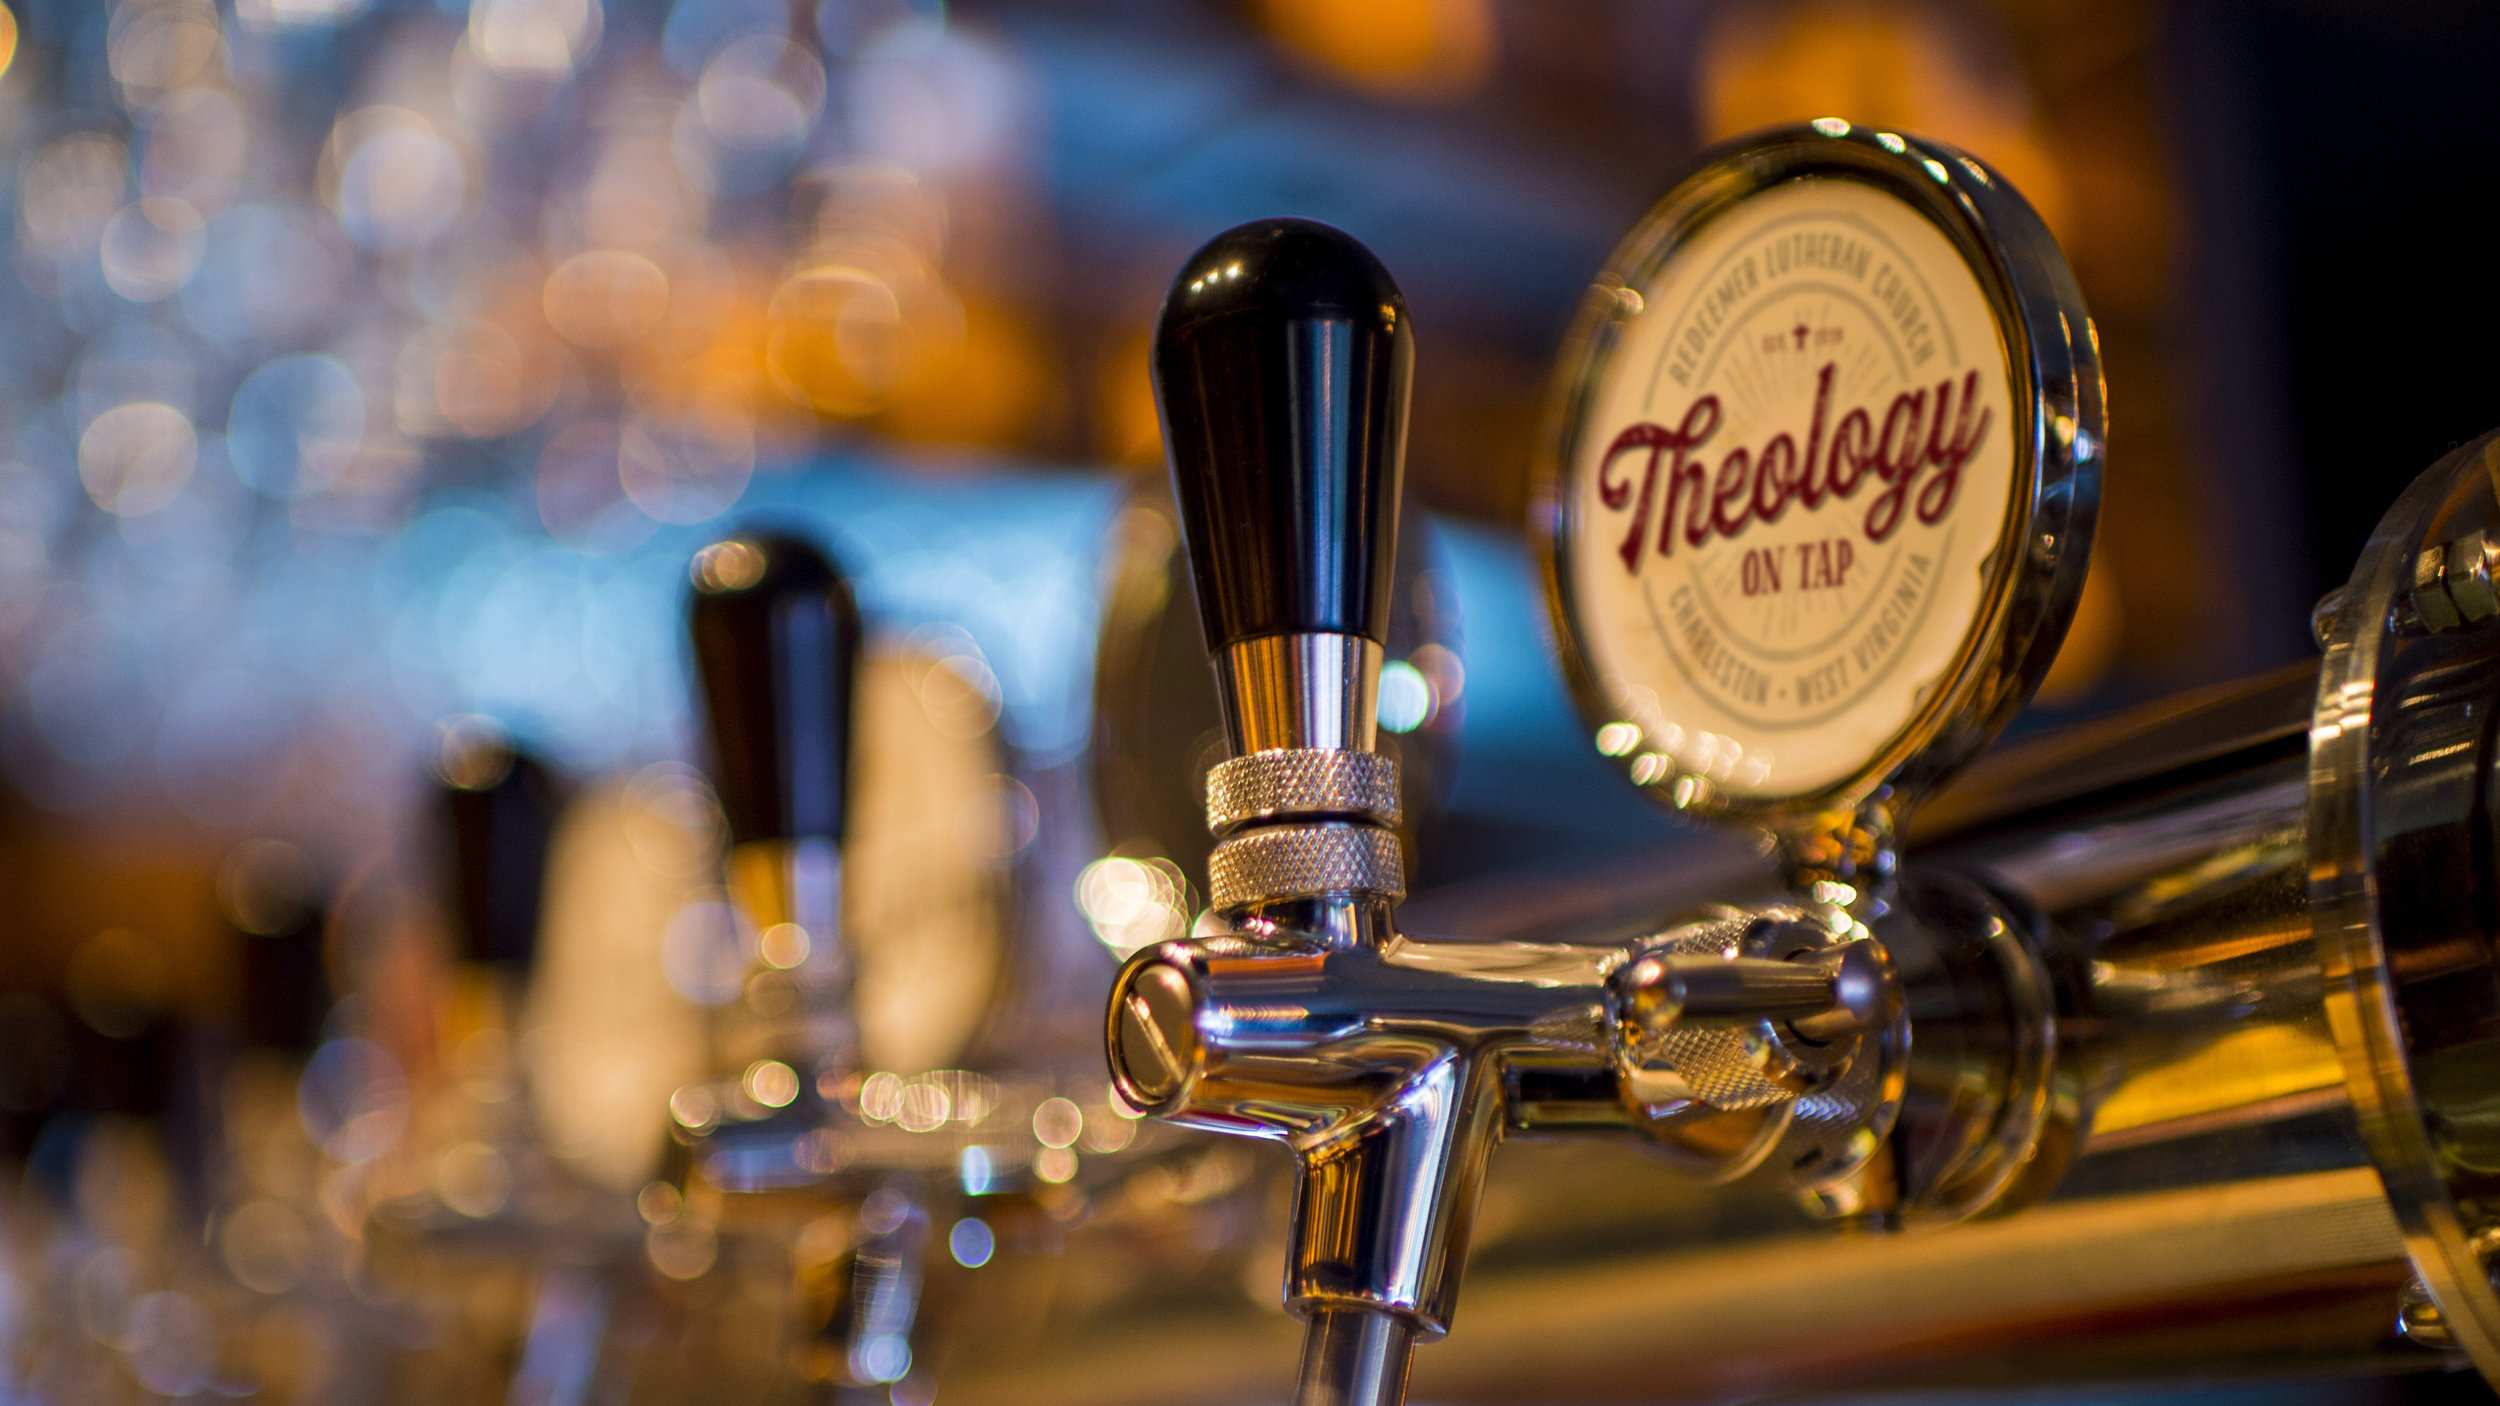 16x9-Theology-on-tap-alcohol-ale-bar-159291.jpg